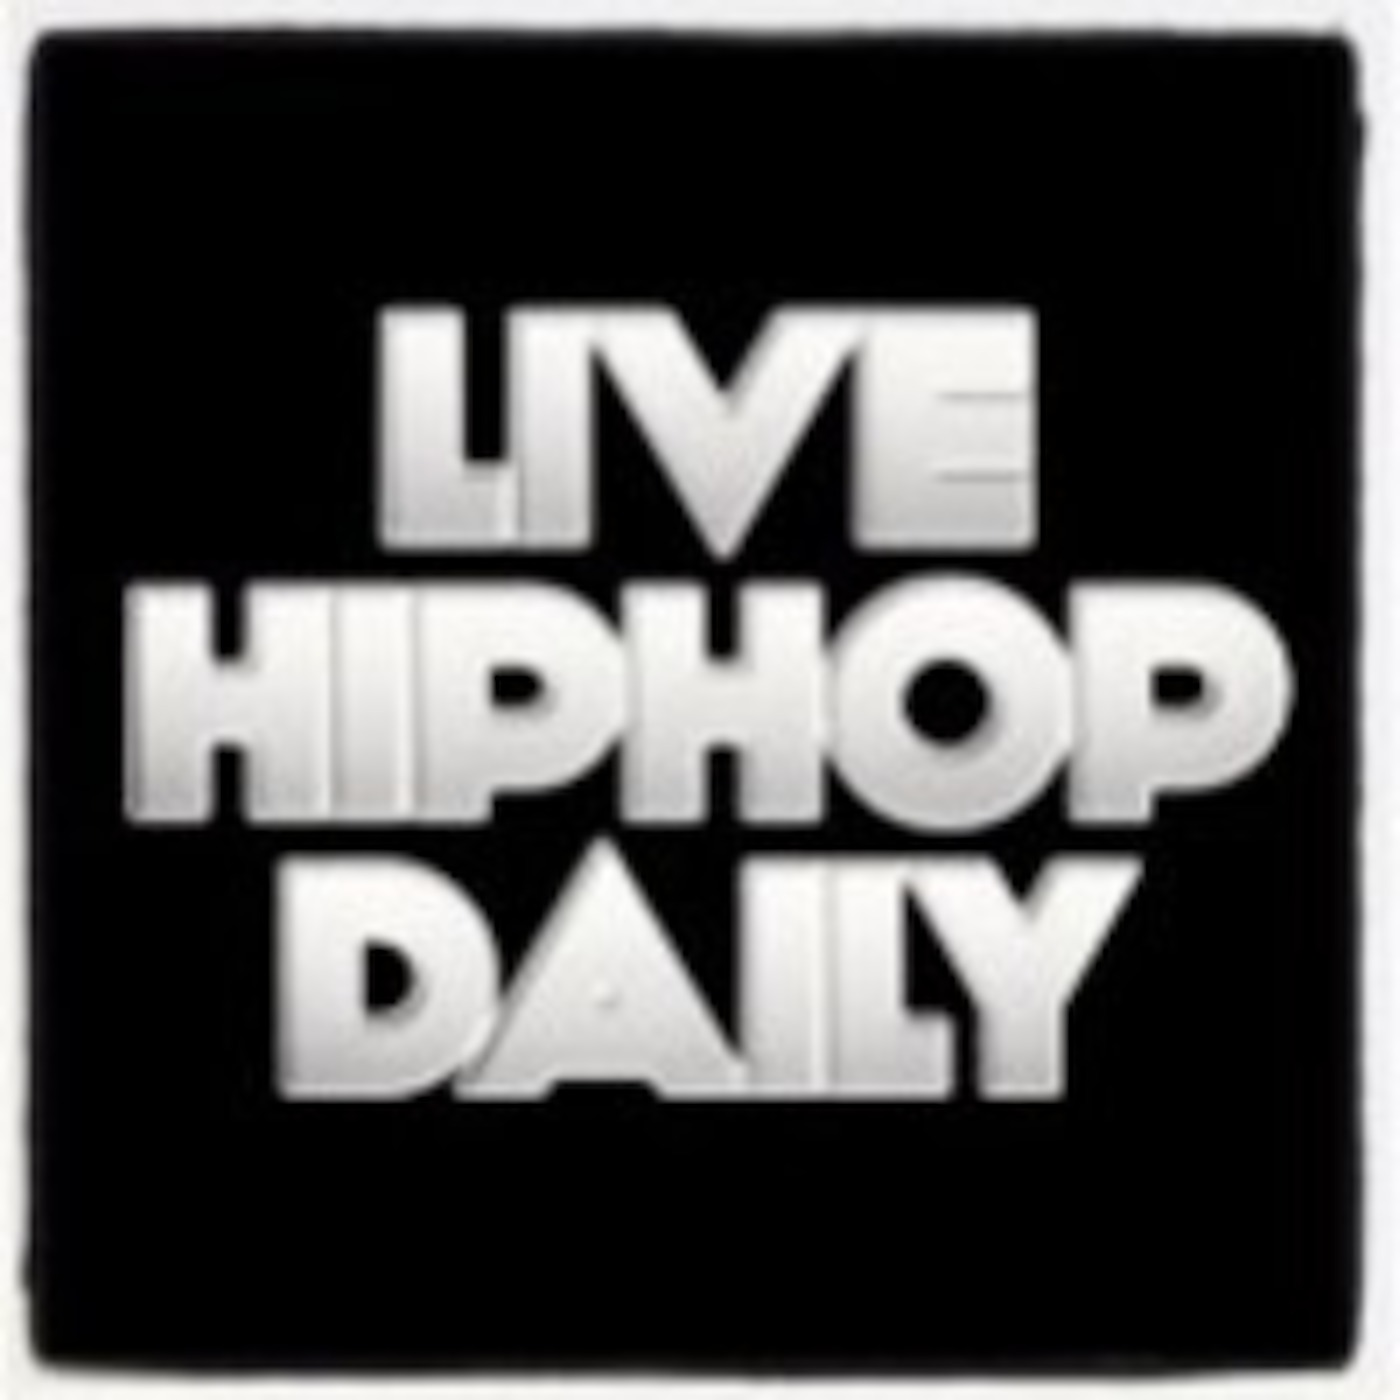 Live Hiphop Daily's Podcast